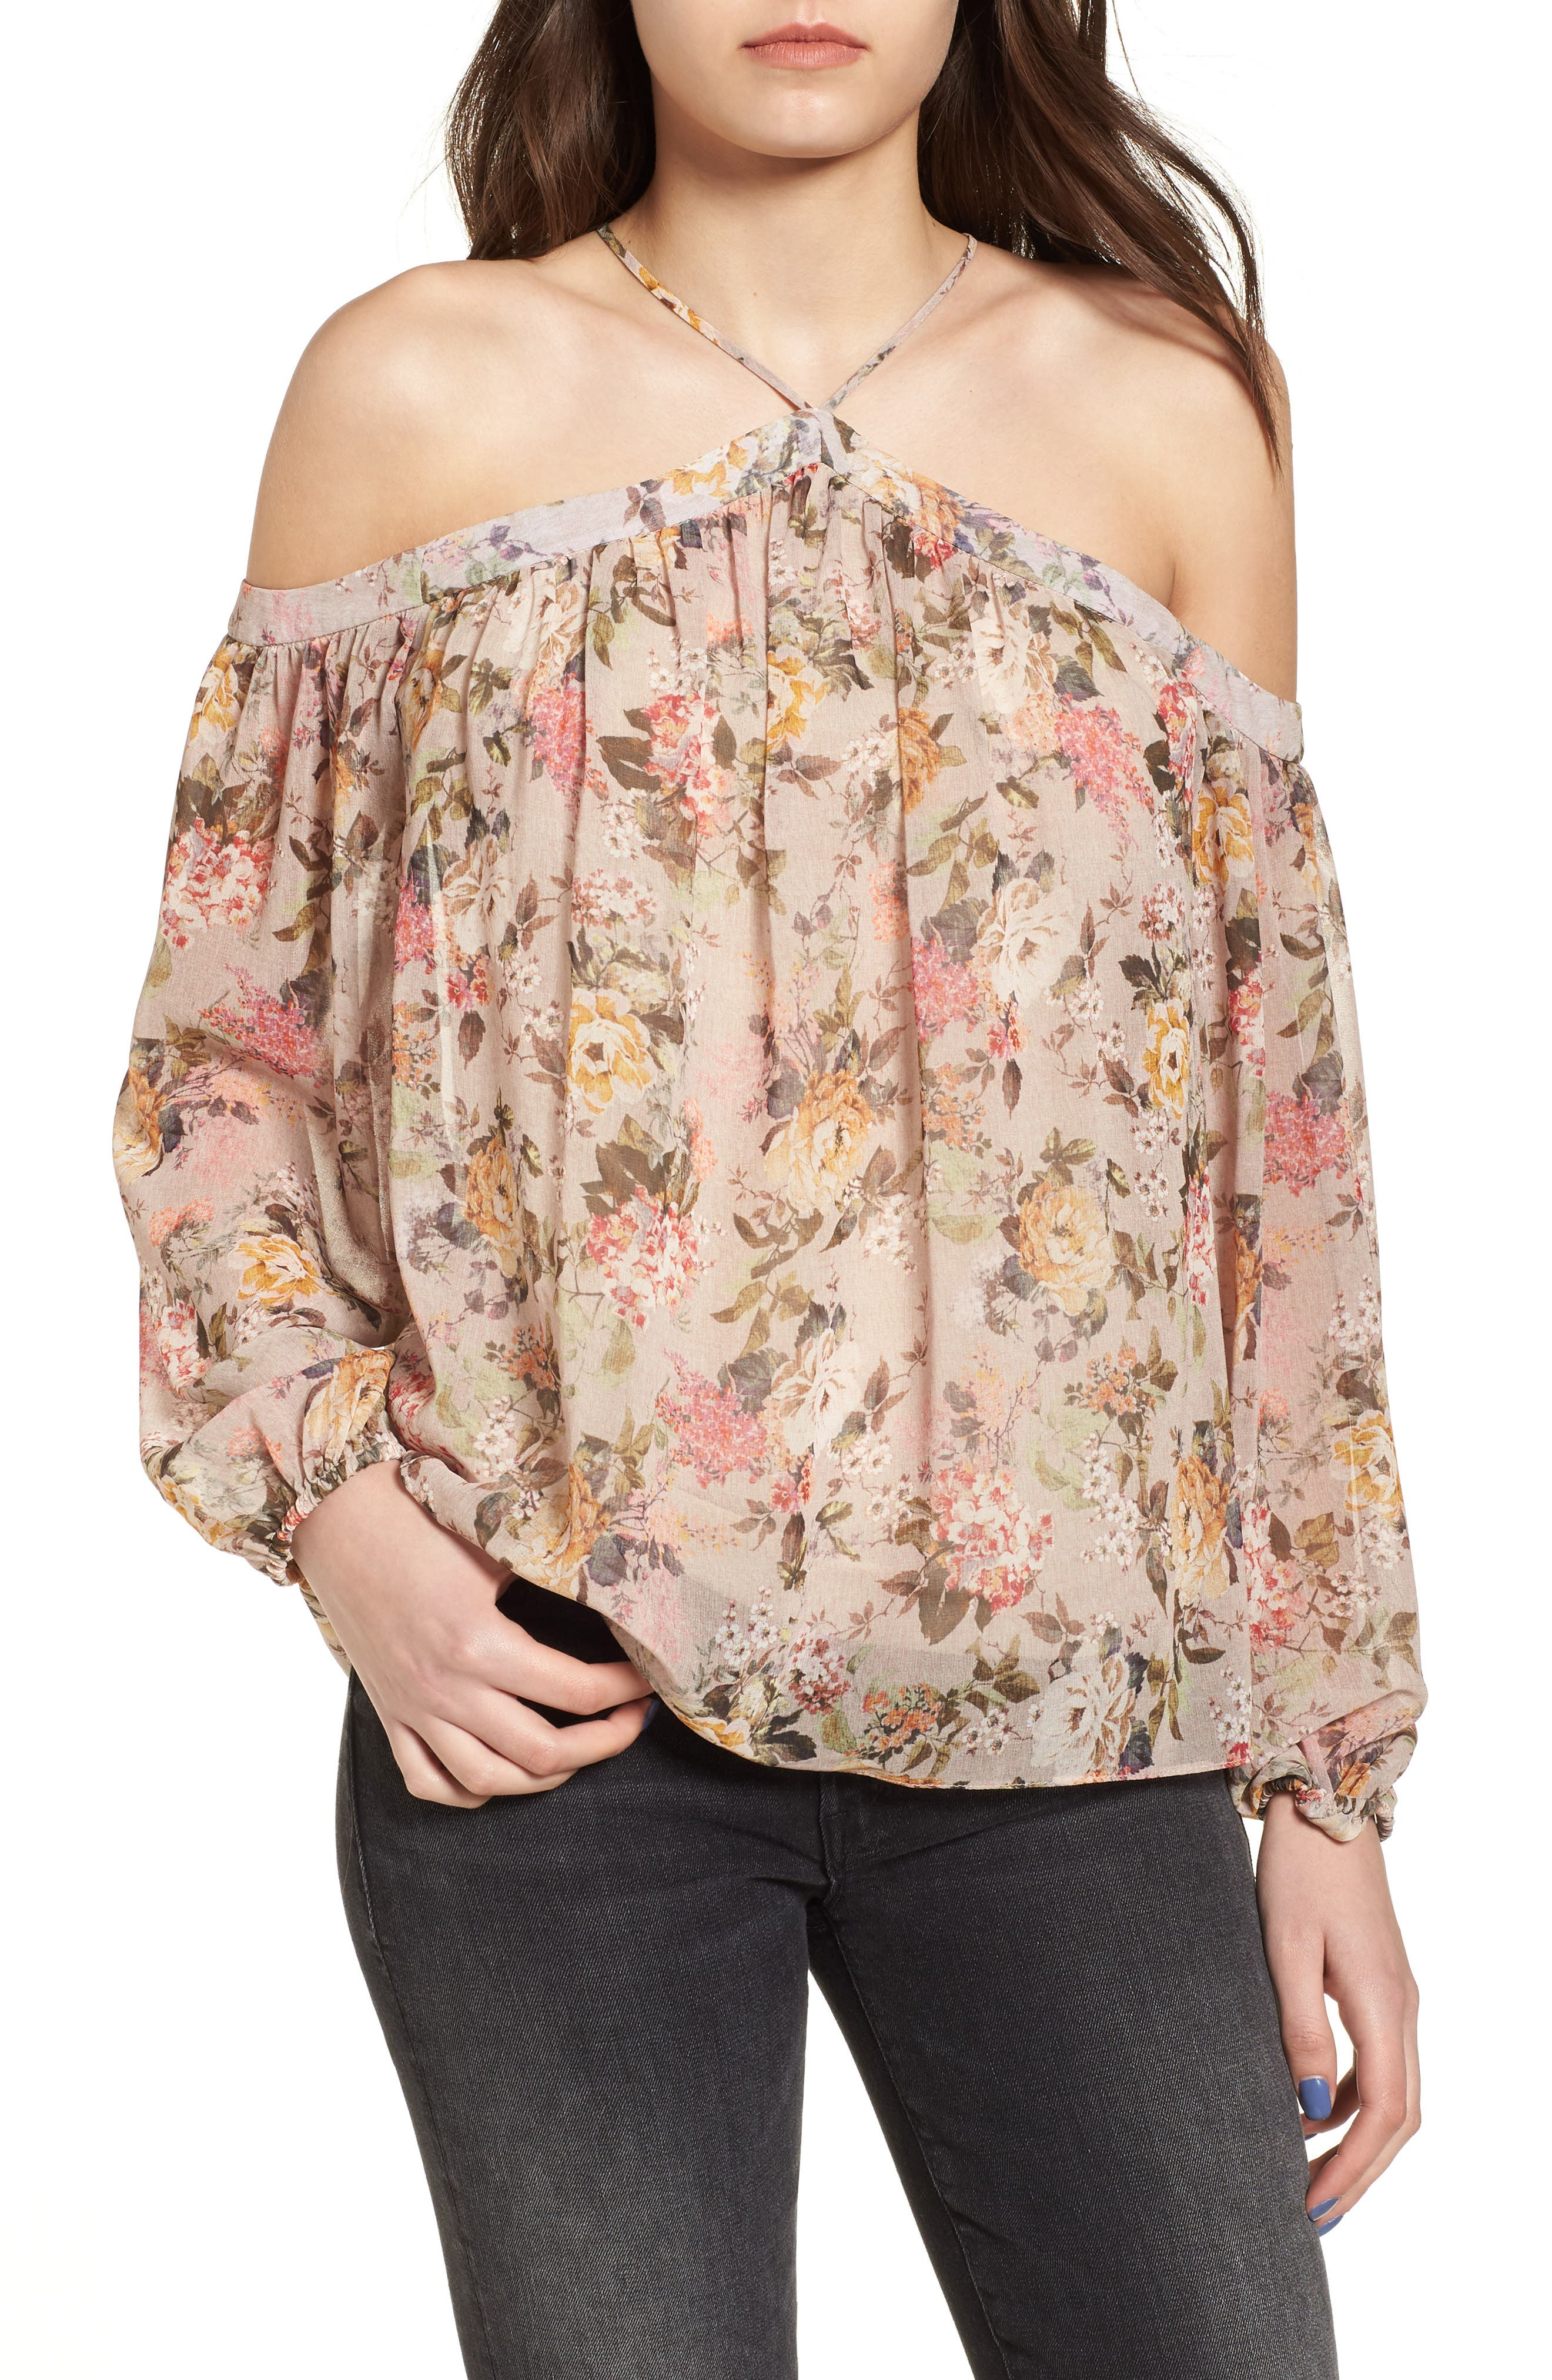 Inamorata Blouse,                             Main thumbnail 1, color,                             Blush